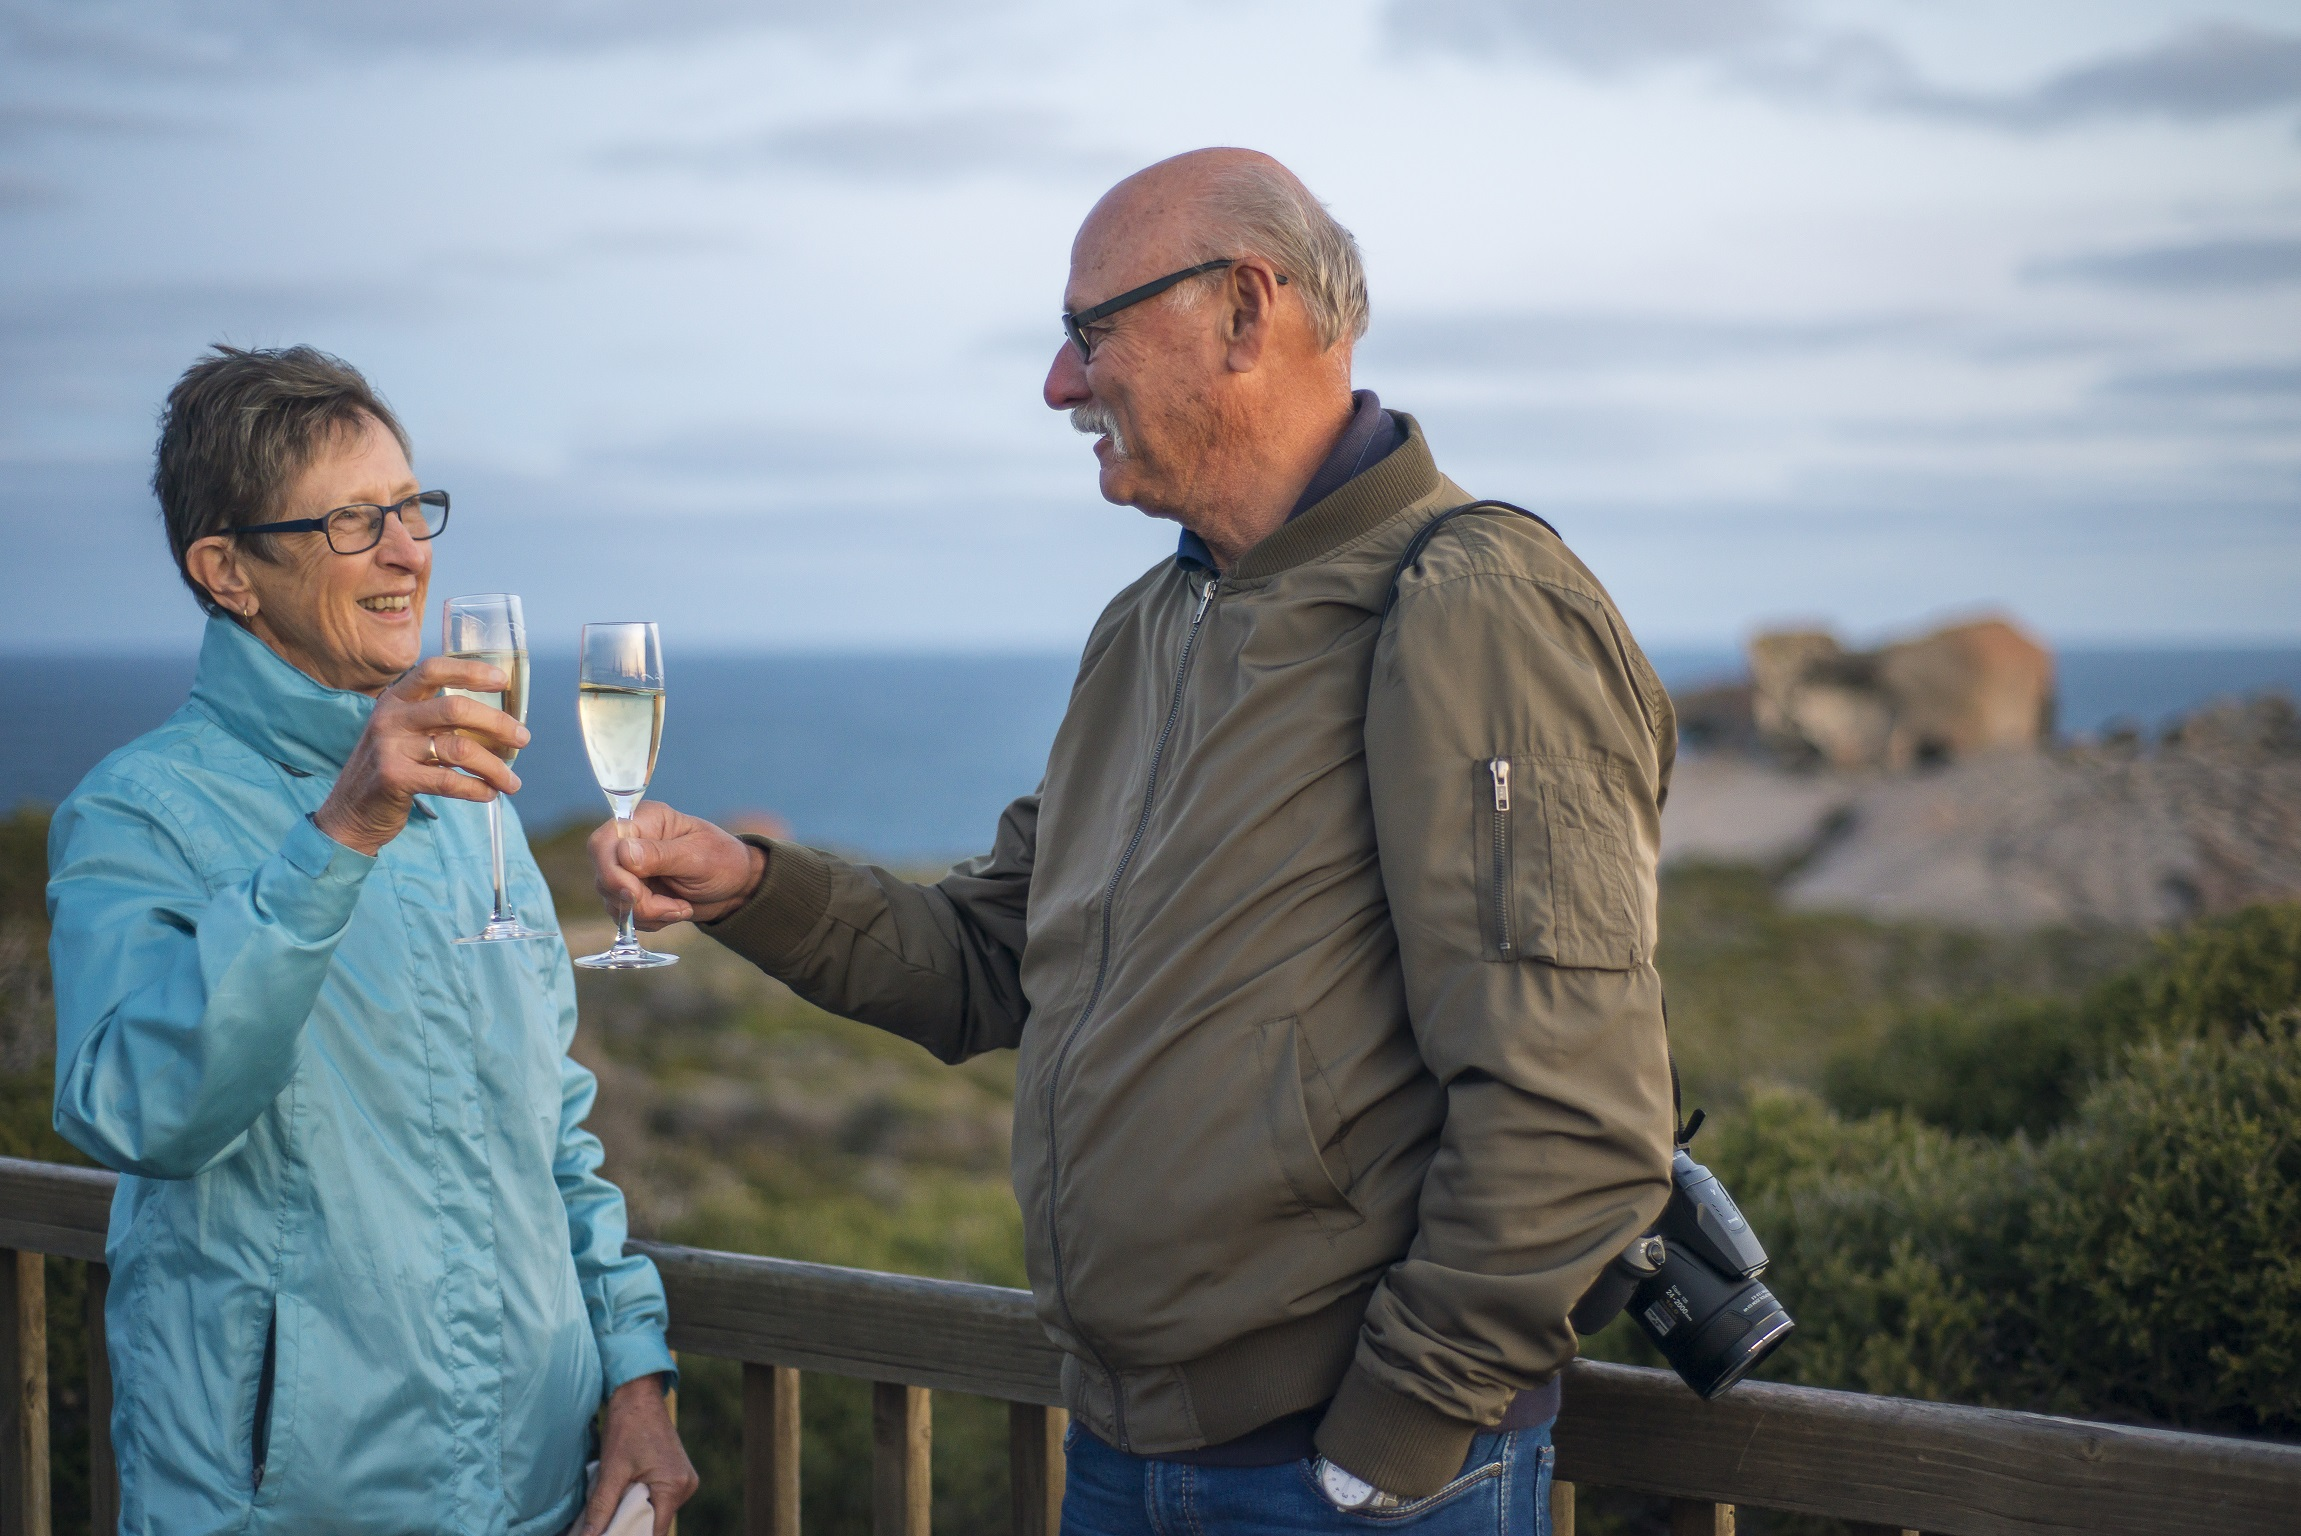 Sunset drinks at Remarkable Rocks